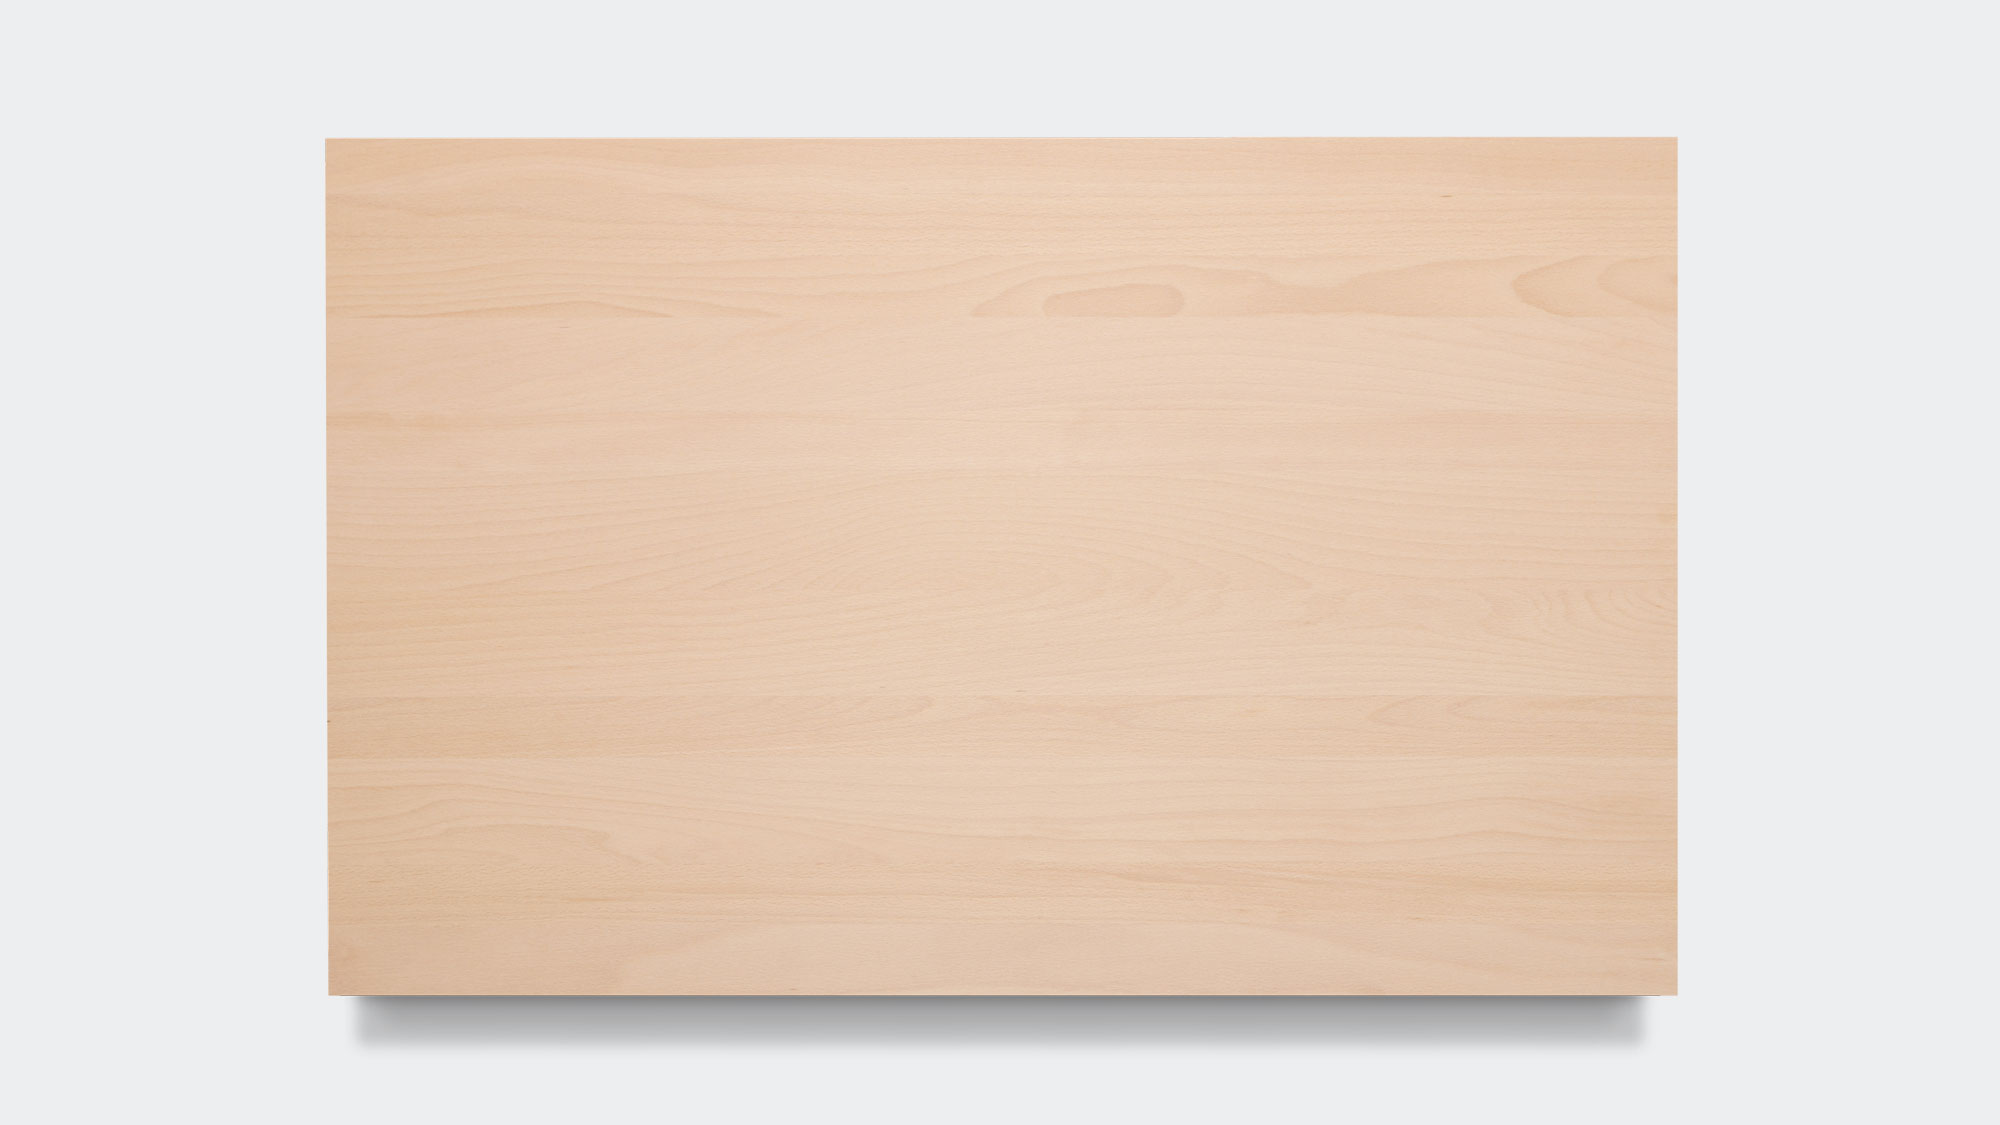 Beech solid wood panels - Edge-glued panels - Class A/B - Image 2